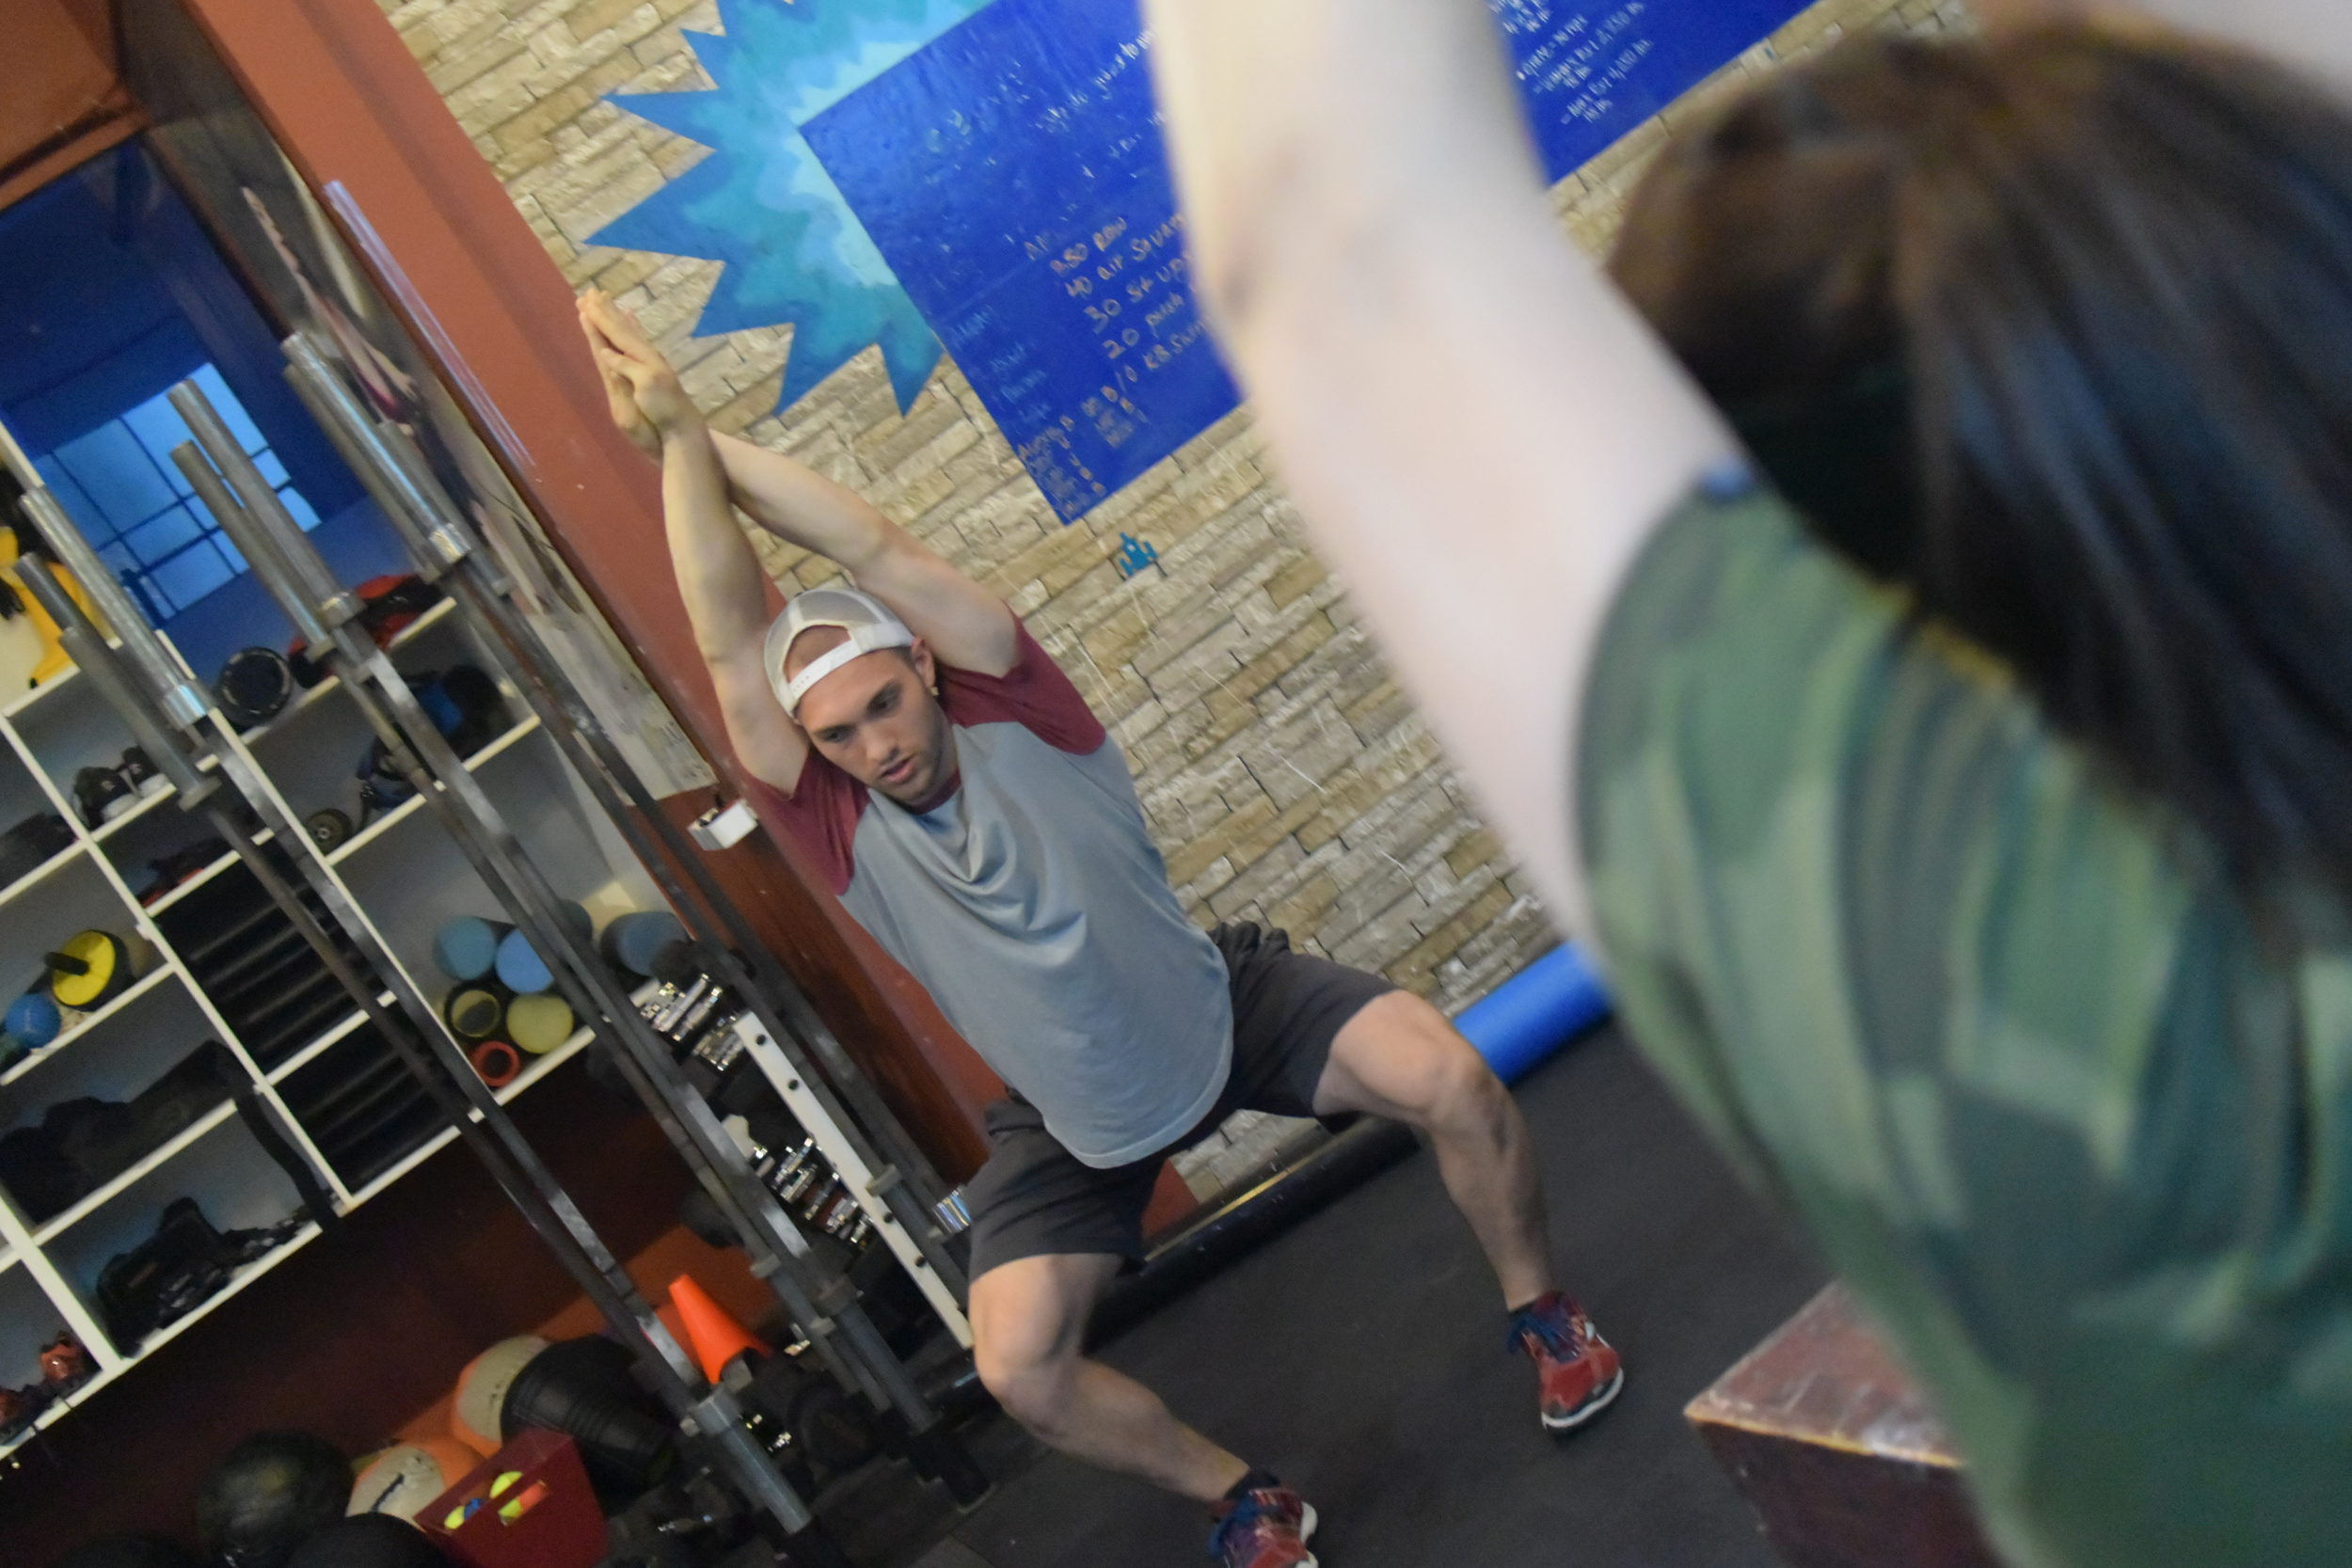 Welcome to our humble box Coach Andre from CrossFit Chico!